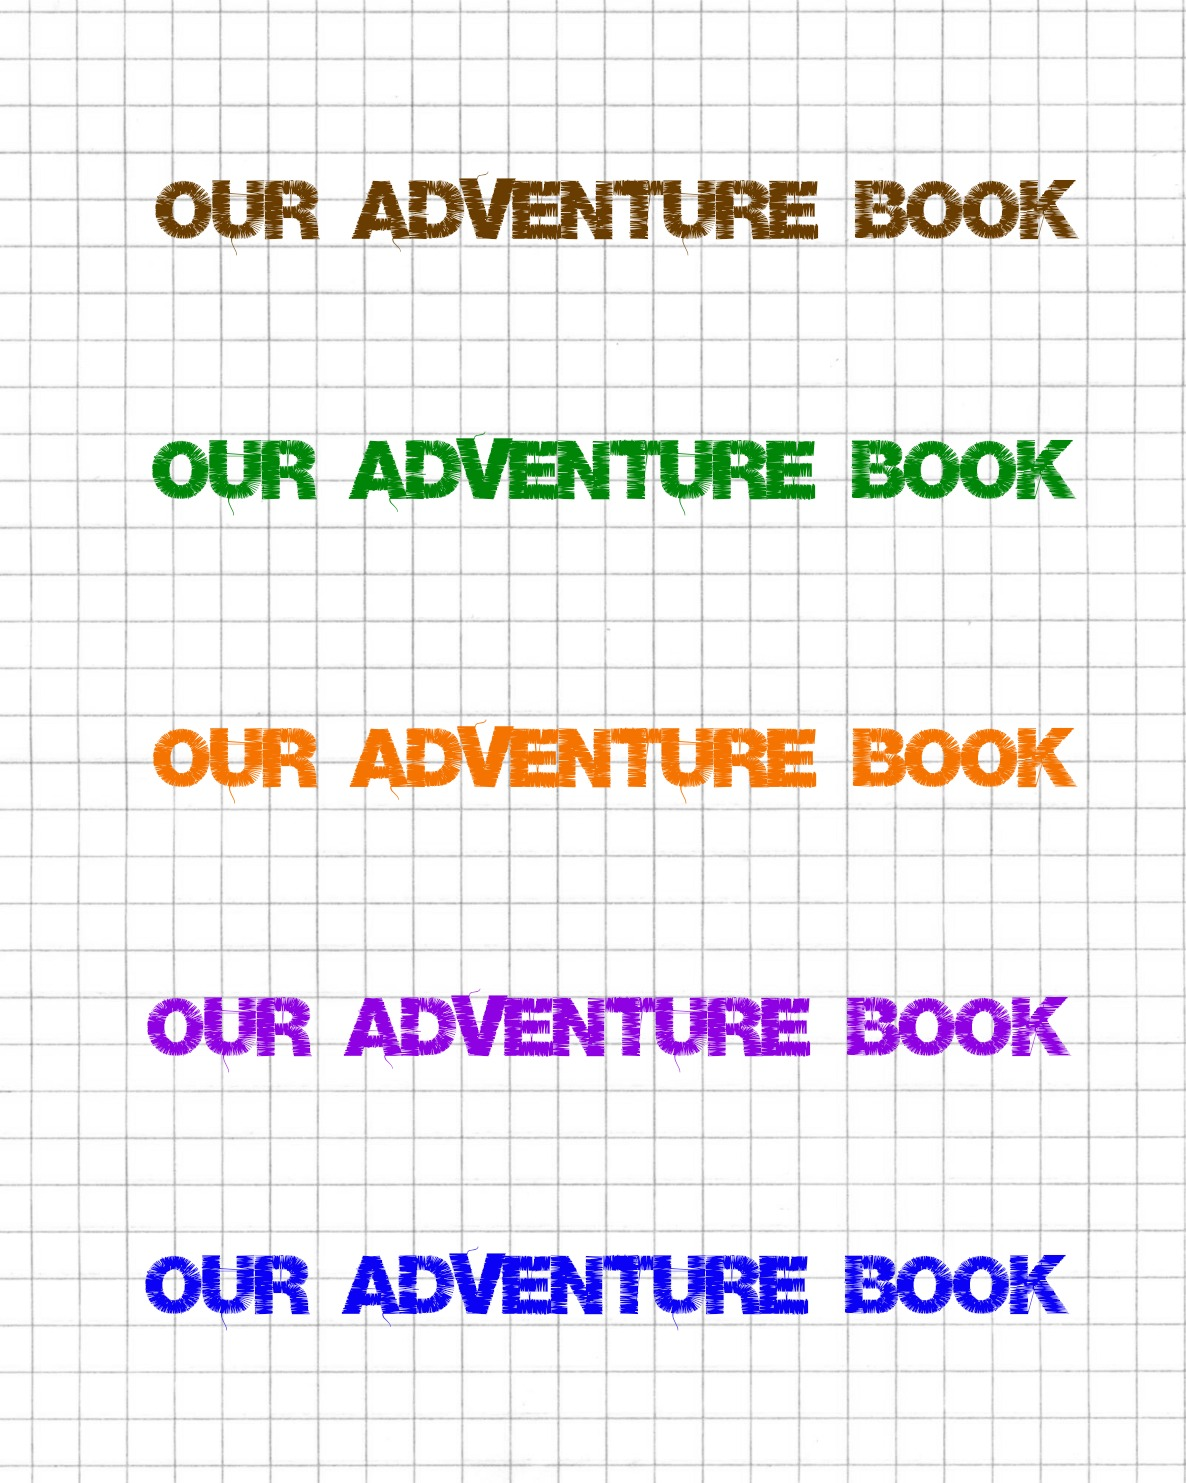 photo regarding Our Adventure Book Printable known as Our Experience E-book Printable - I Dig Pinterest